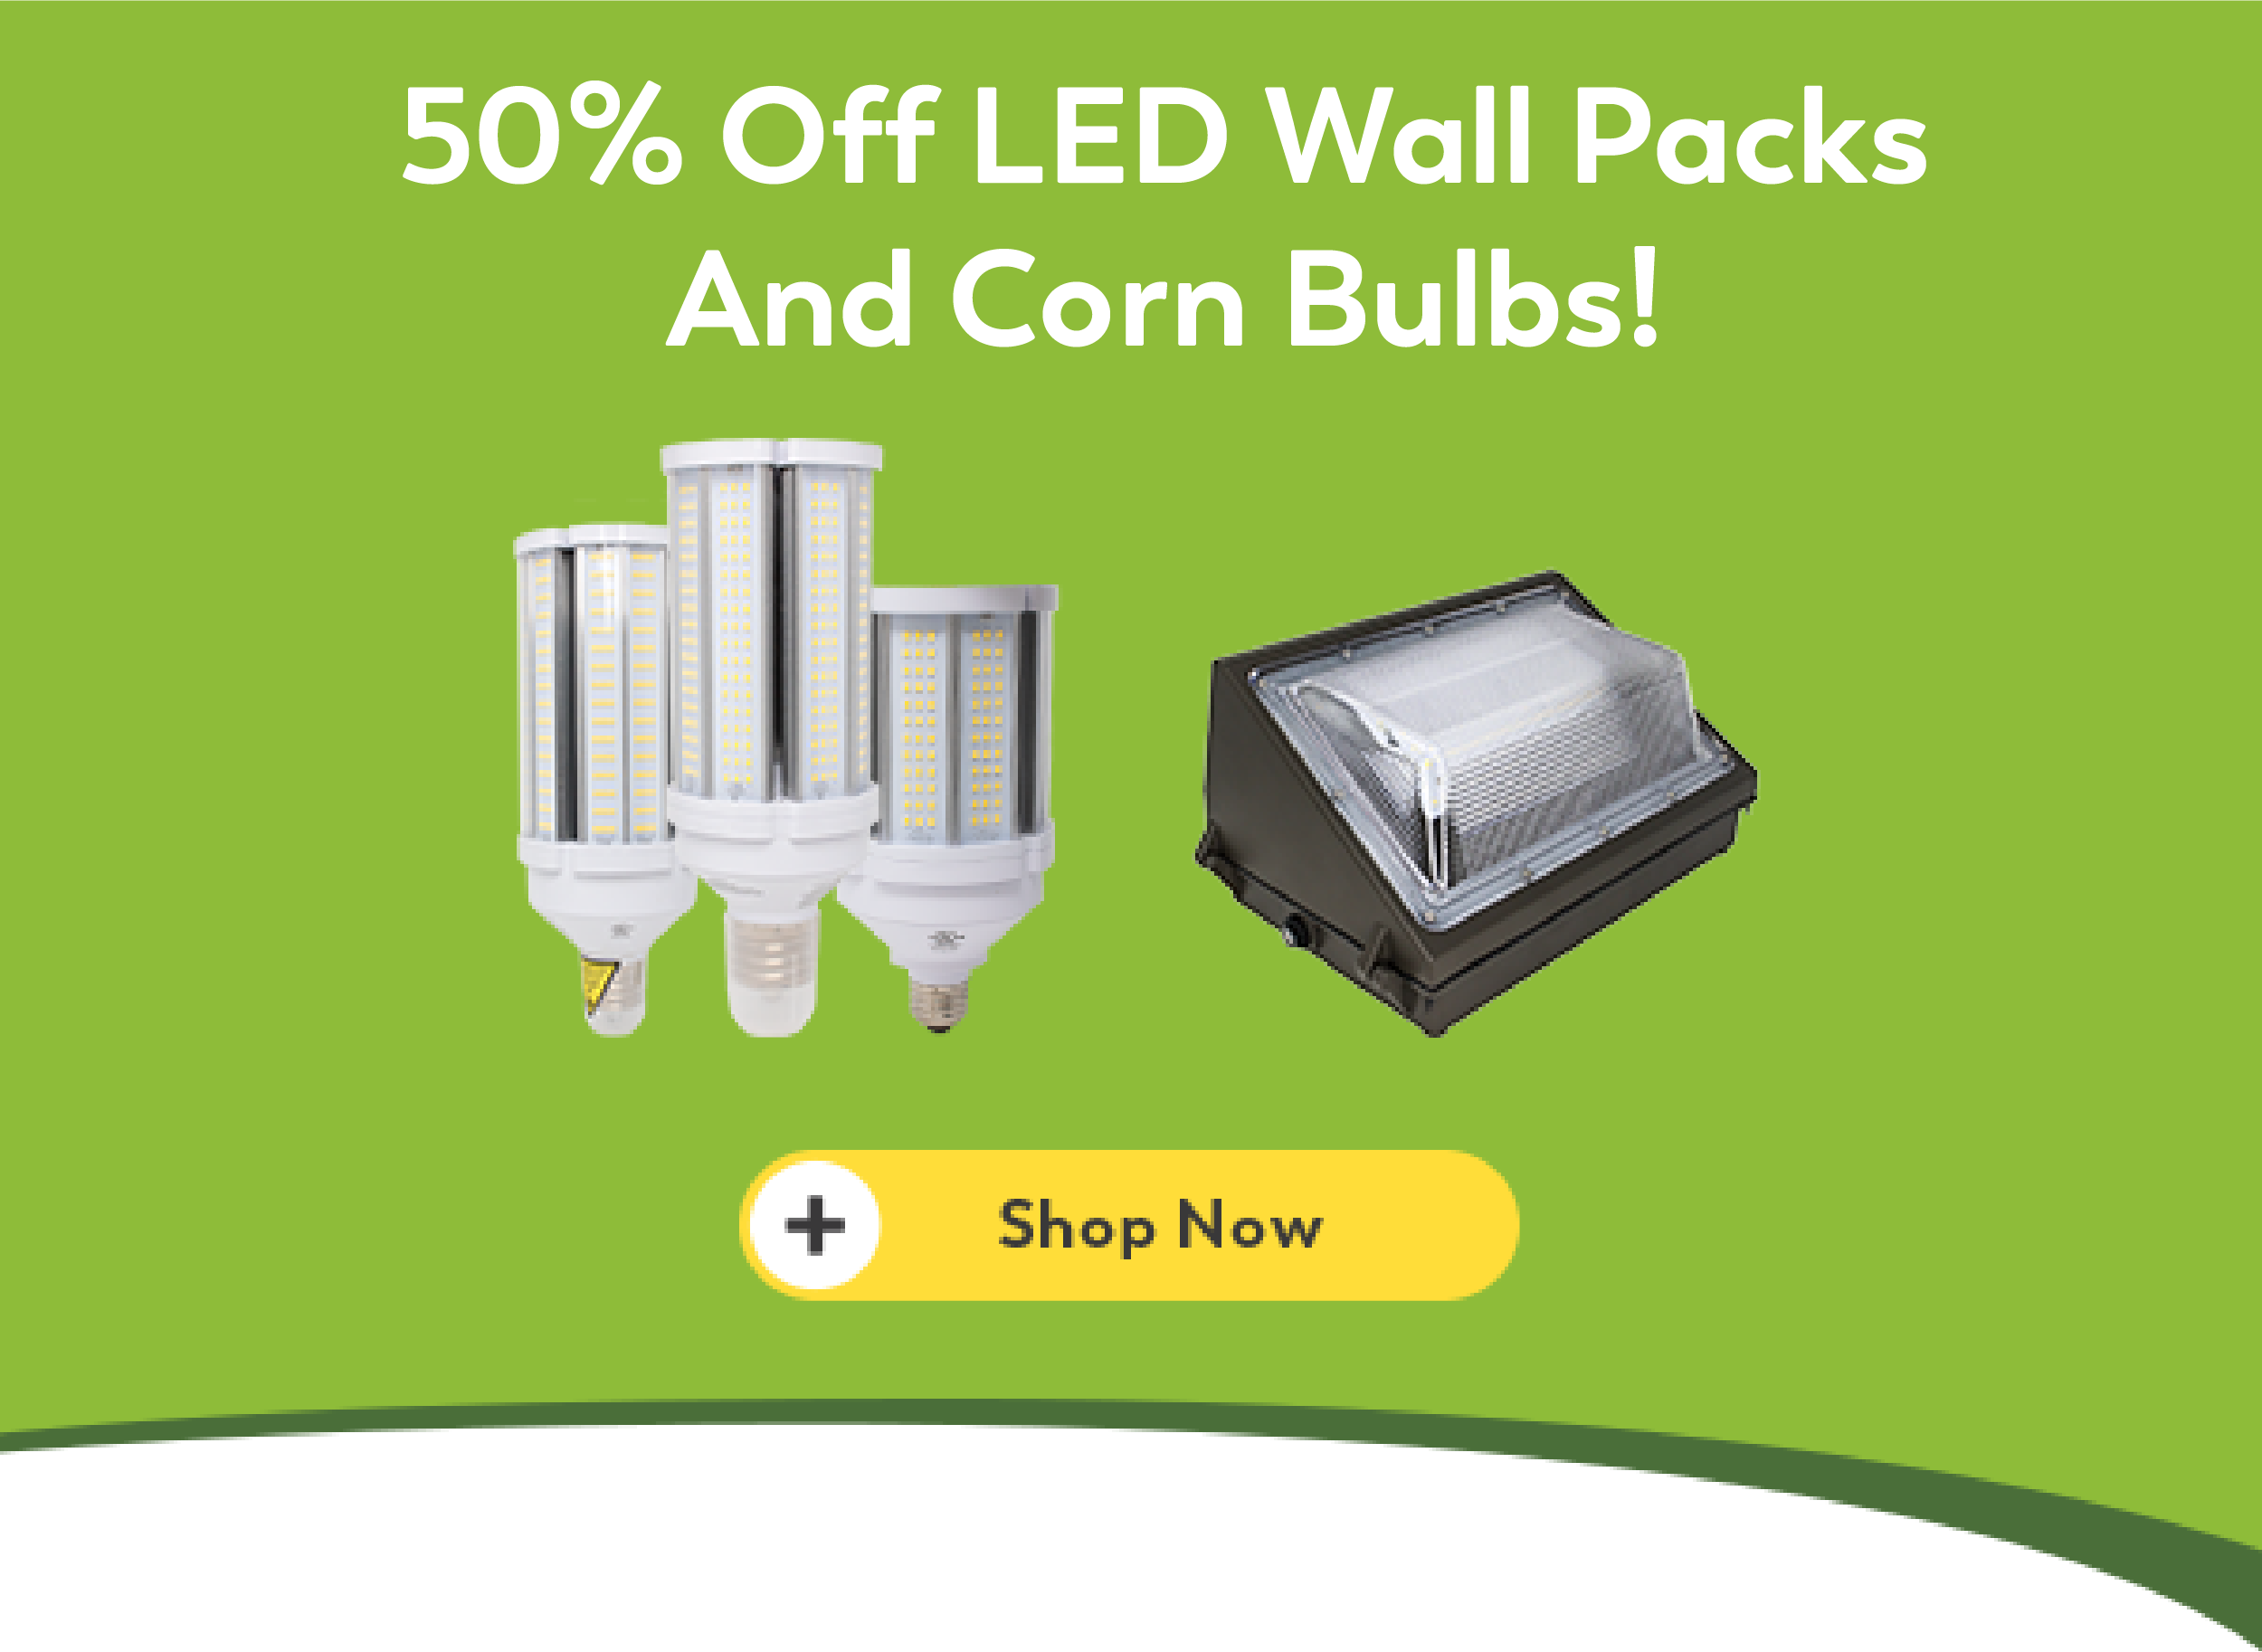 045-0236-06-06-badge-ce-marketplace-25-off-wall-packs-and-corn-bulbs.png